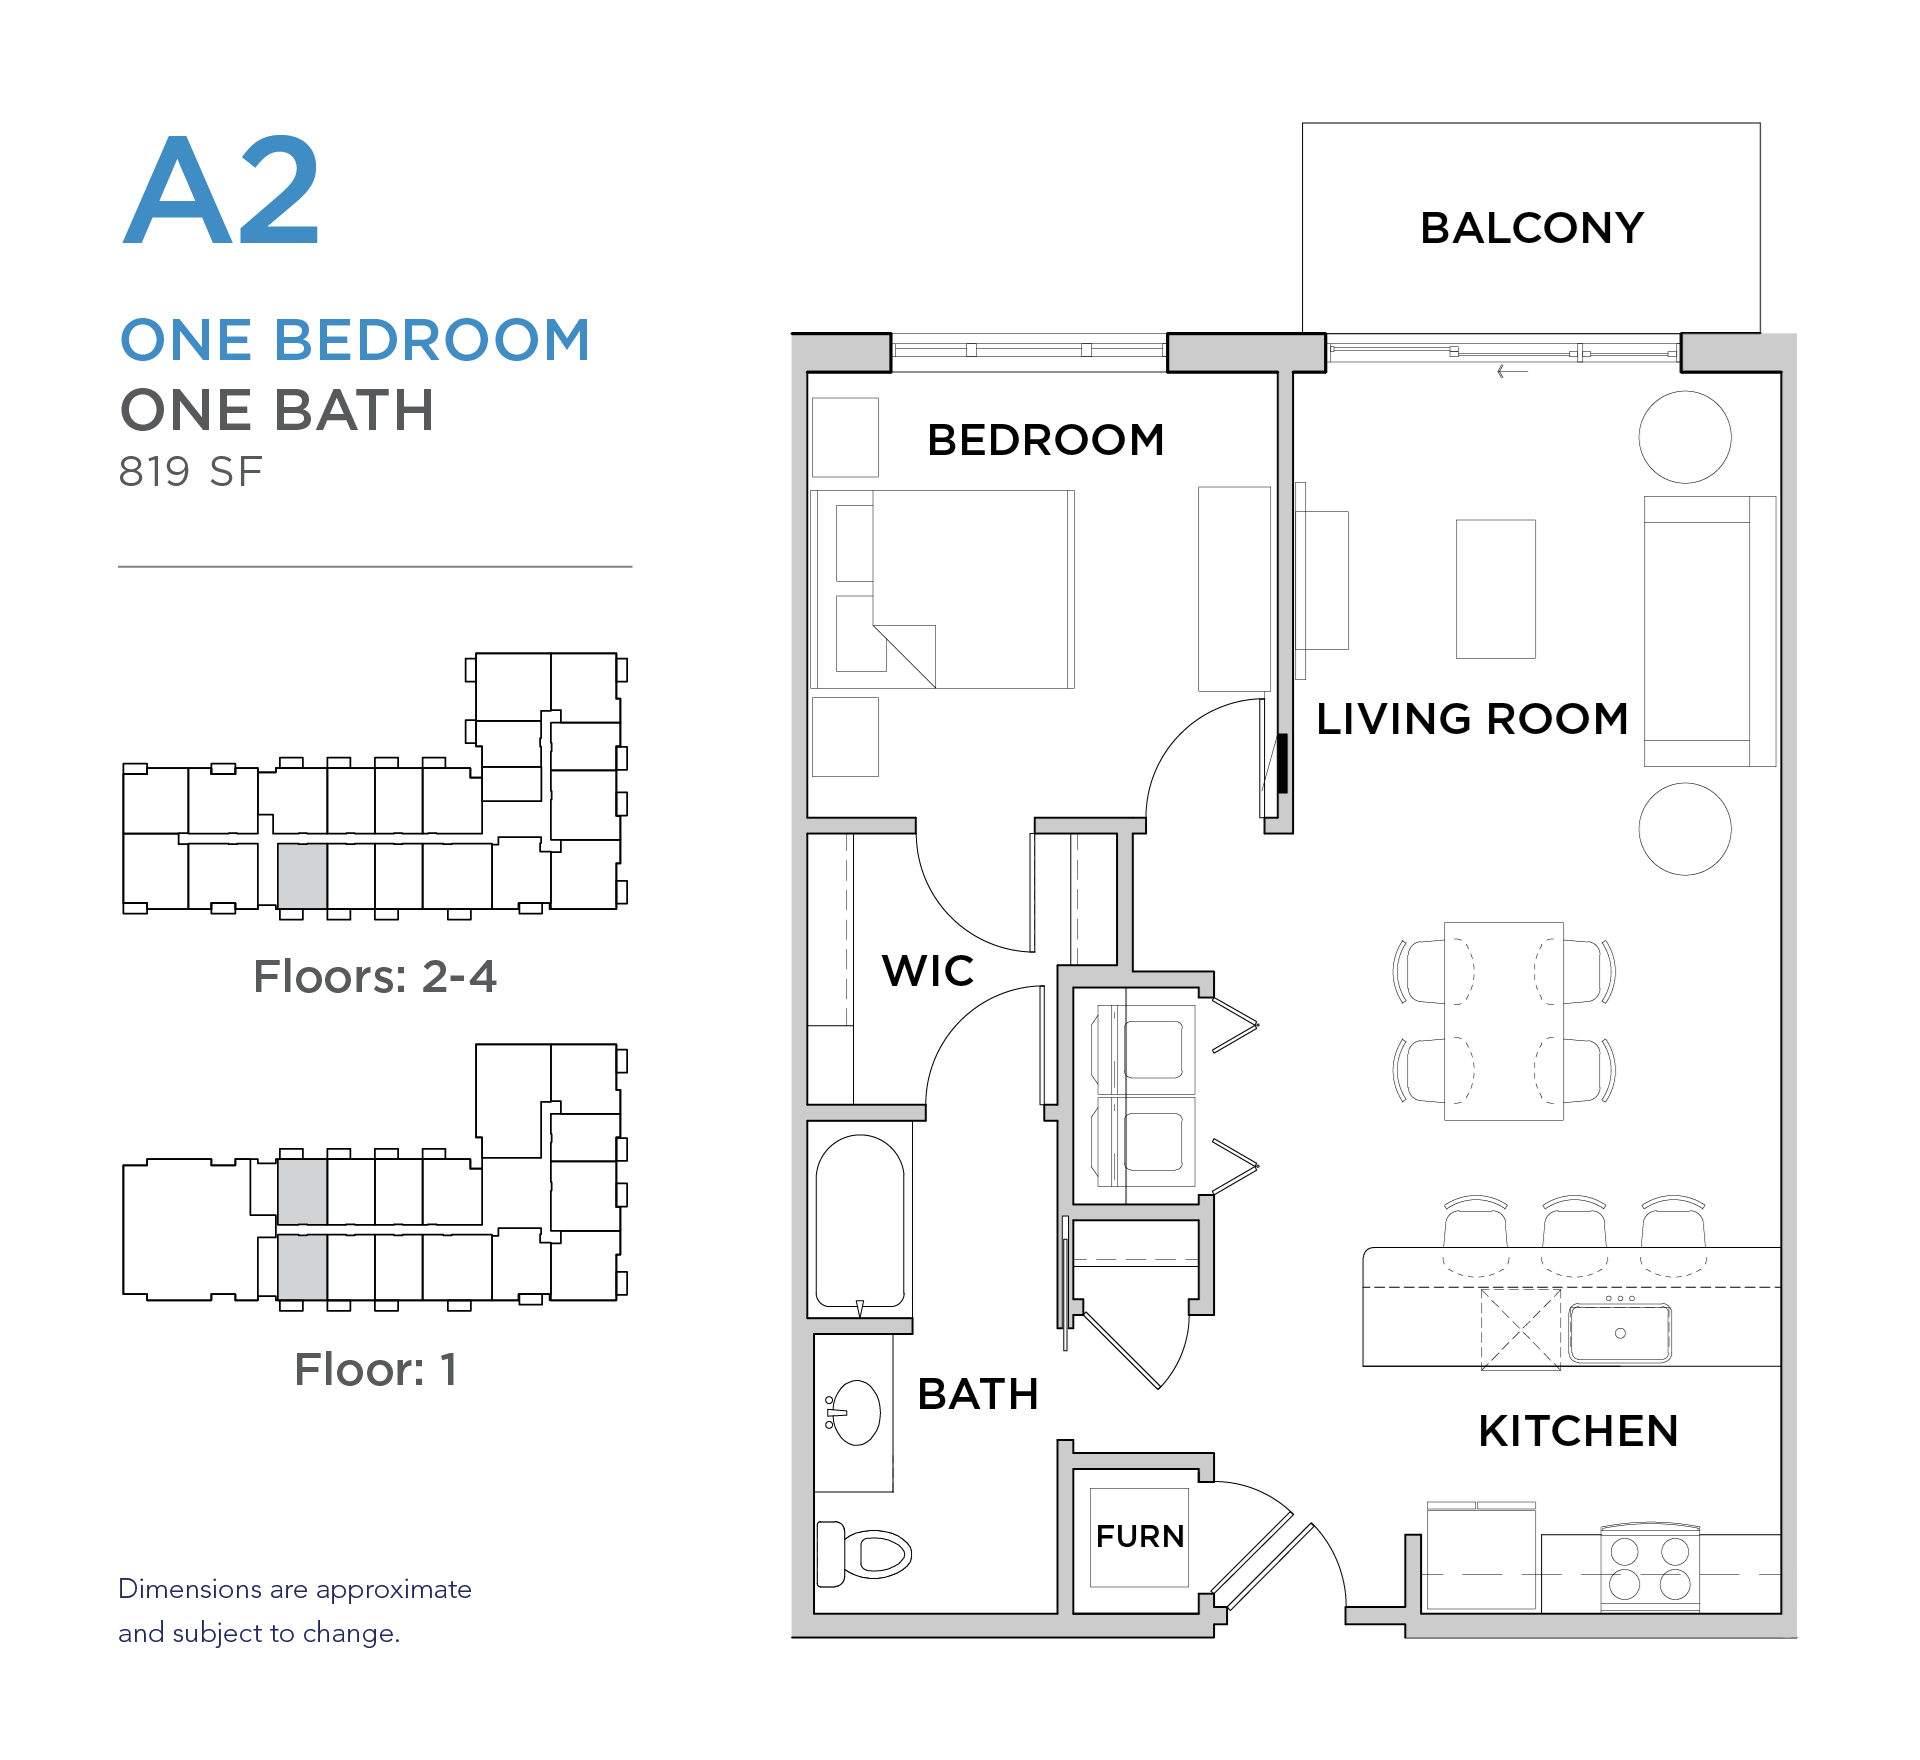 101 West 1 bed 1 bath 819 square foot apartment floor plan